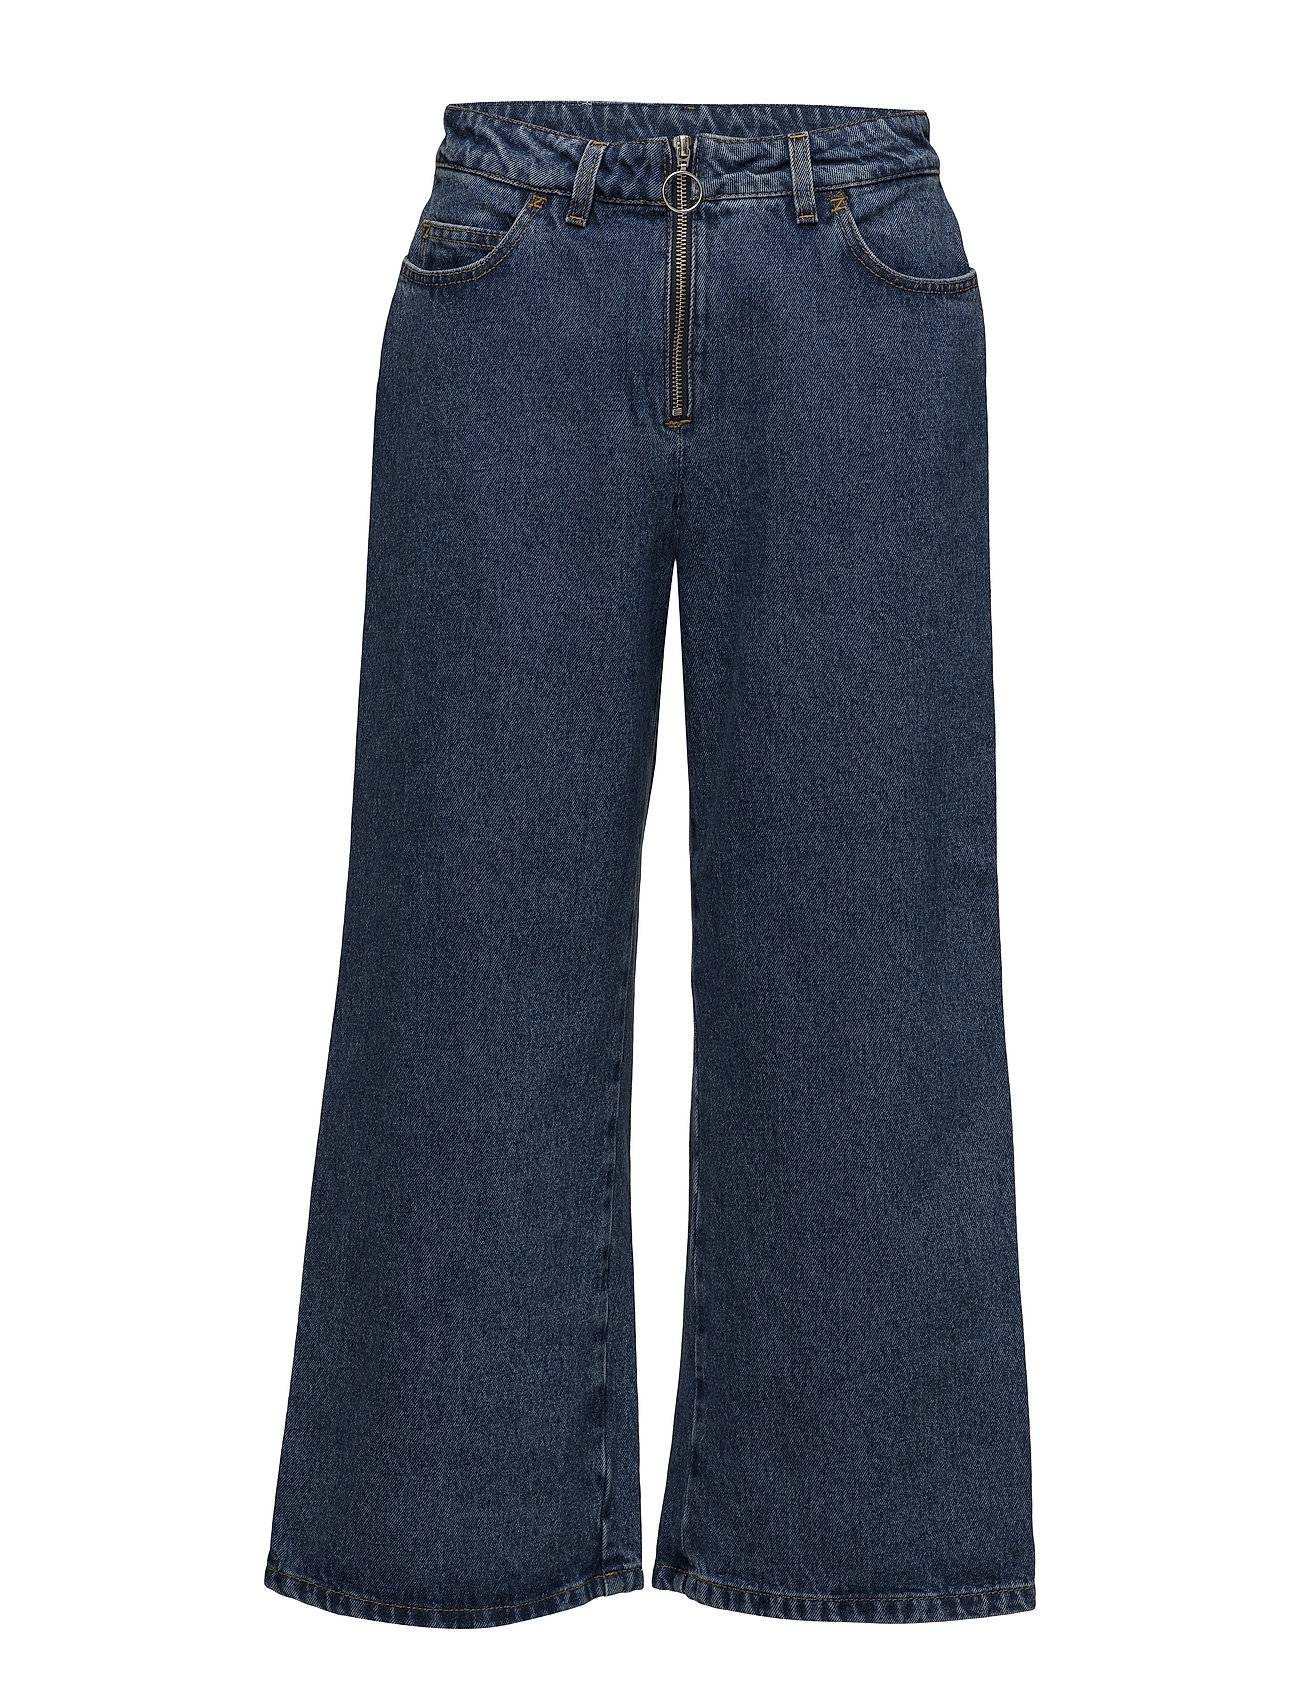 HOLZWEILER Leonora Jeans